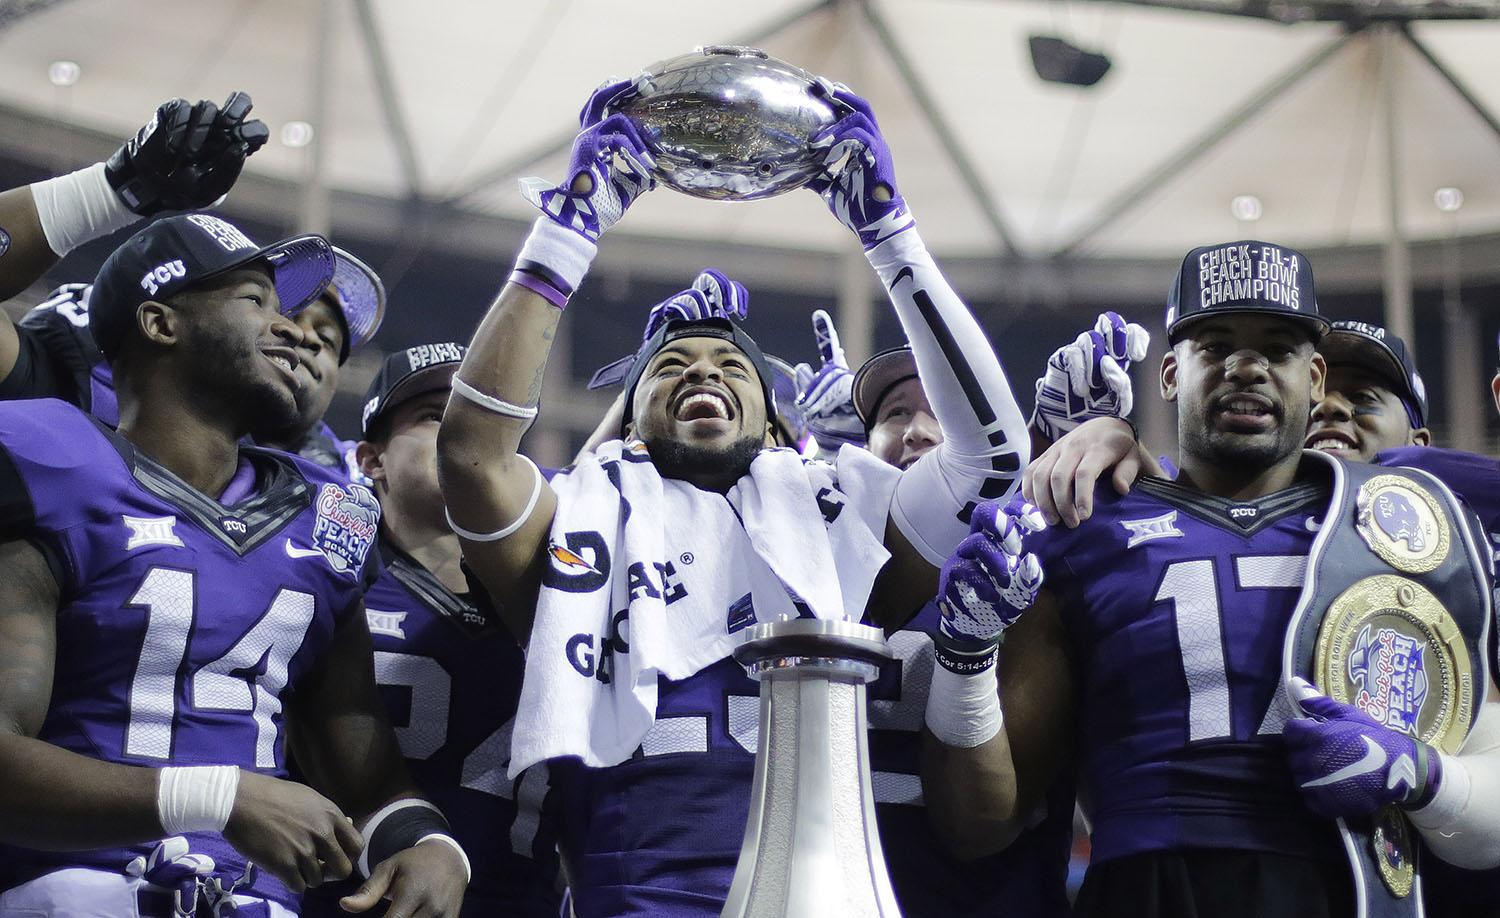 TCU safety Michael Downing holds part of the Peach Bowl trophy after the second half of the Peach Bowl NCAA football game against Mississippi, Wednesday, Dec. 31, 2014, in Atlanta. TCU won 42-3. (AP Photo/David Goldman)